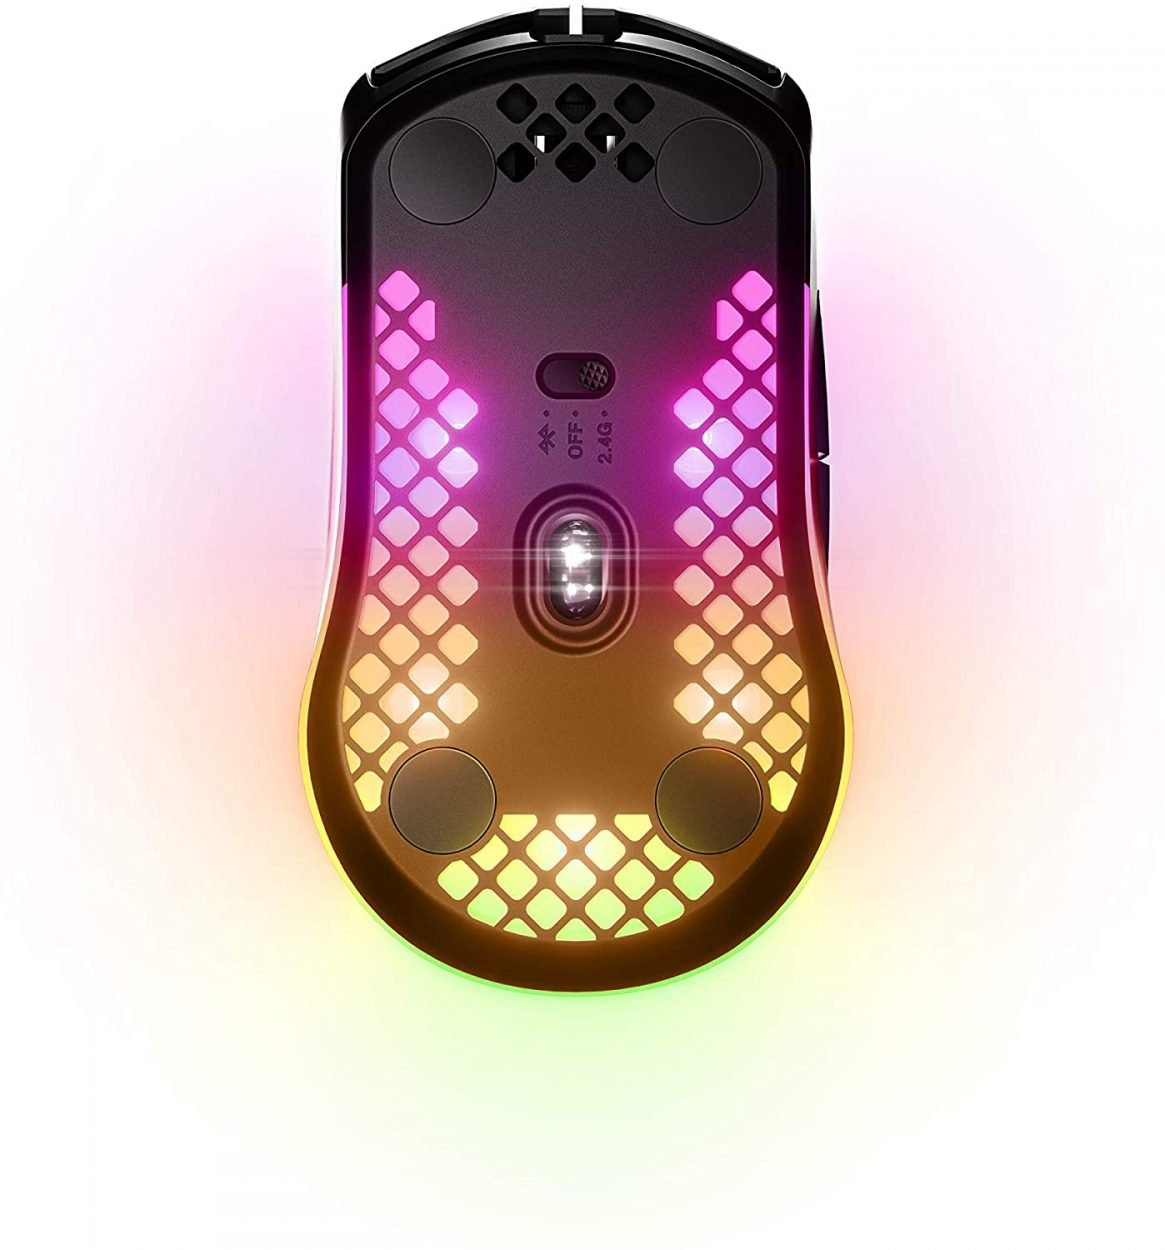 SteelSeries Aerox 3 Gaming Mouse